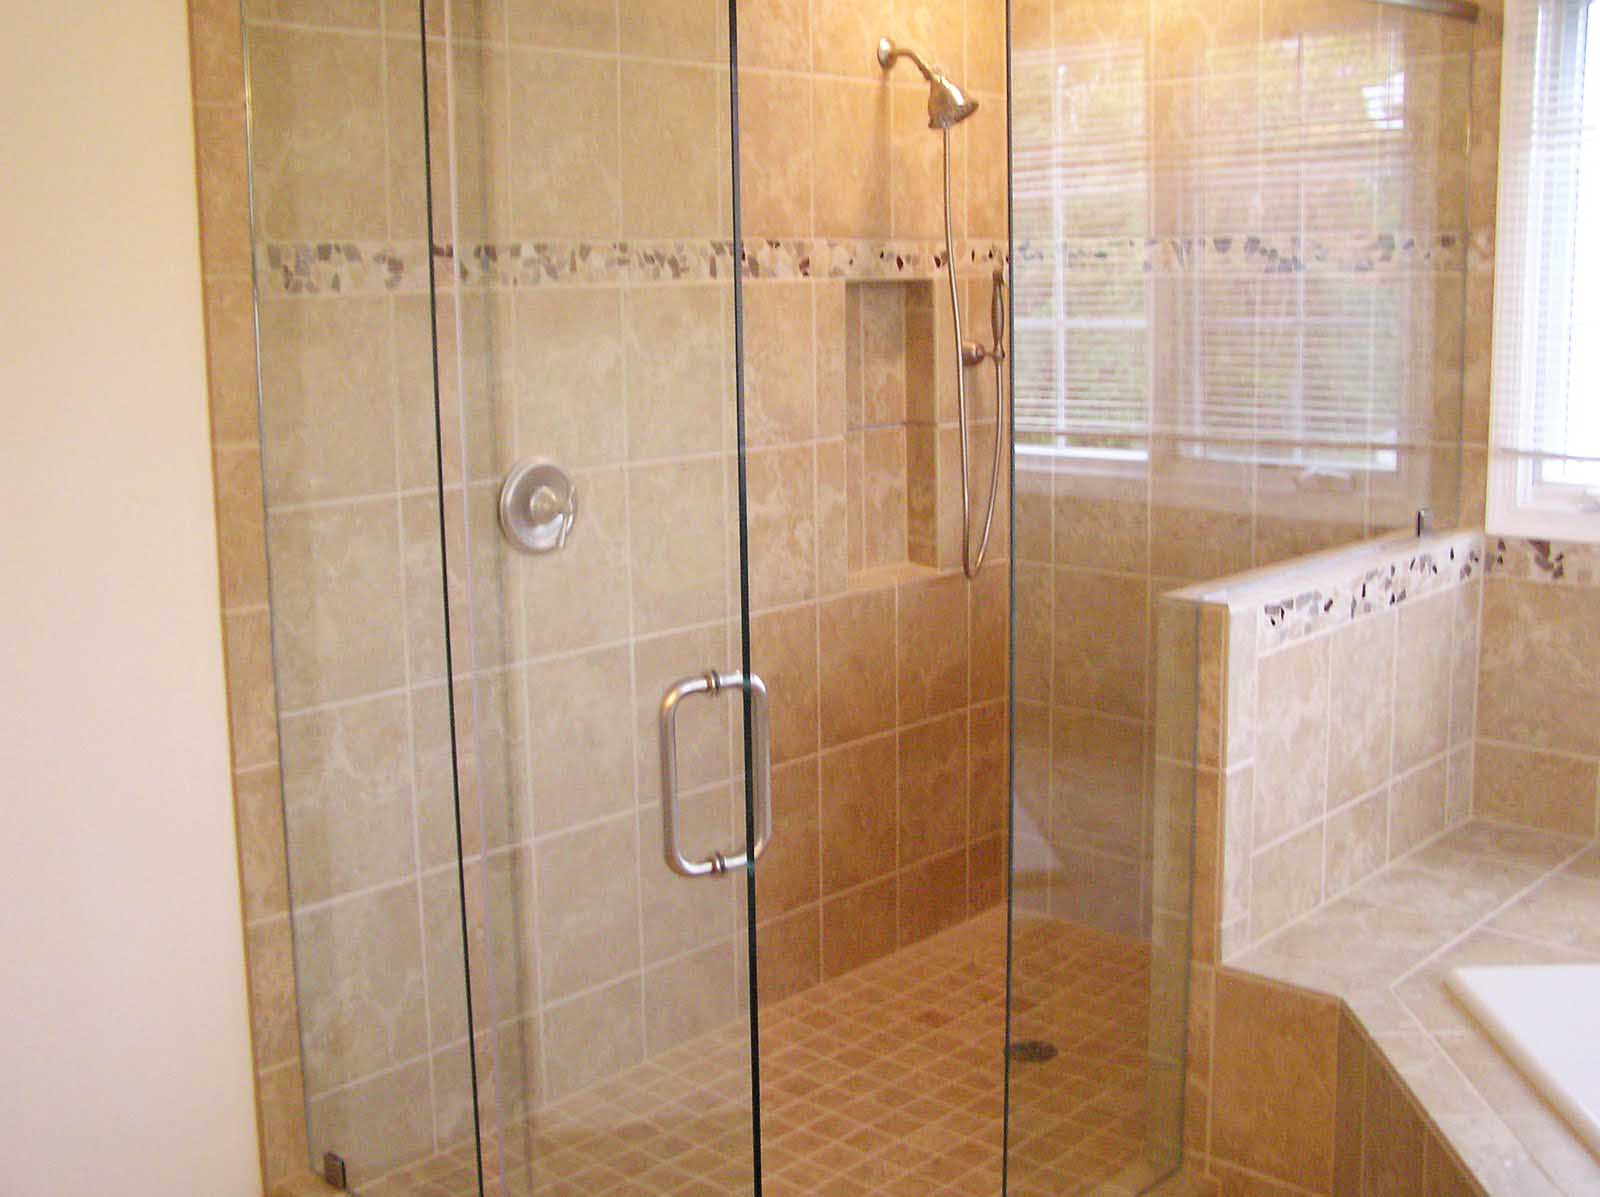 Bathroom Tiled Shower Design Ideas ~ Amazing pictures and ideas of old fashioned bathroom